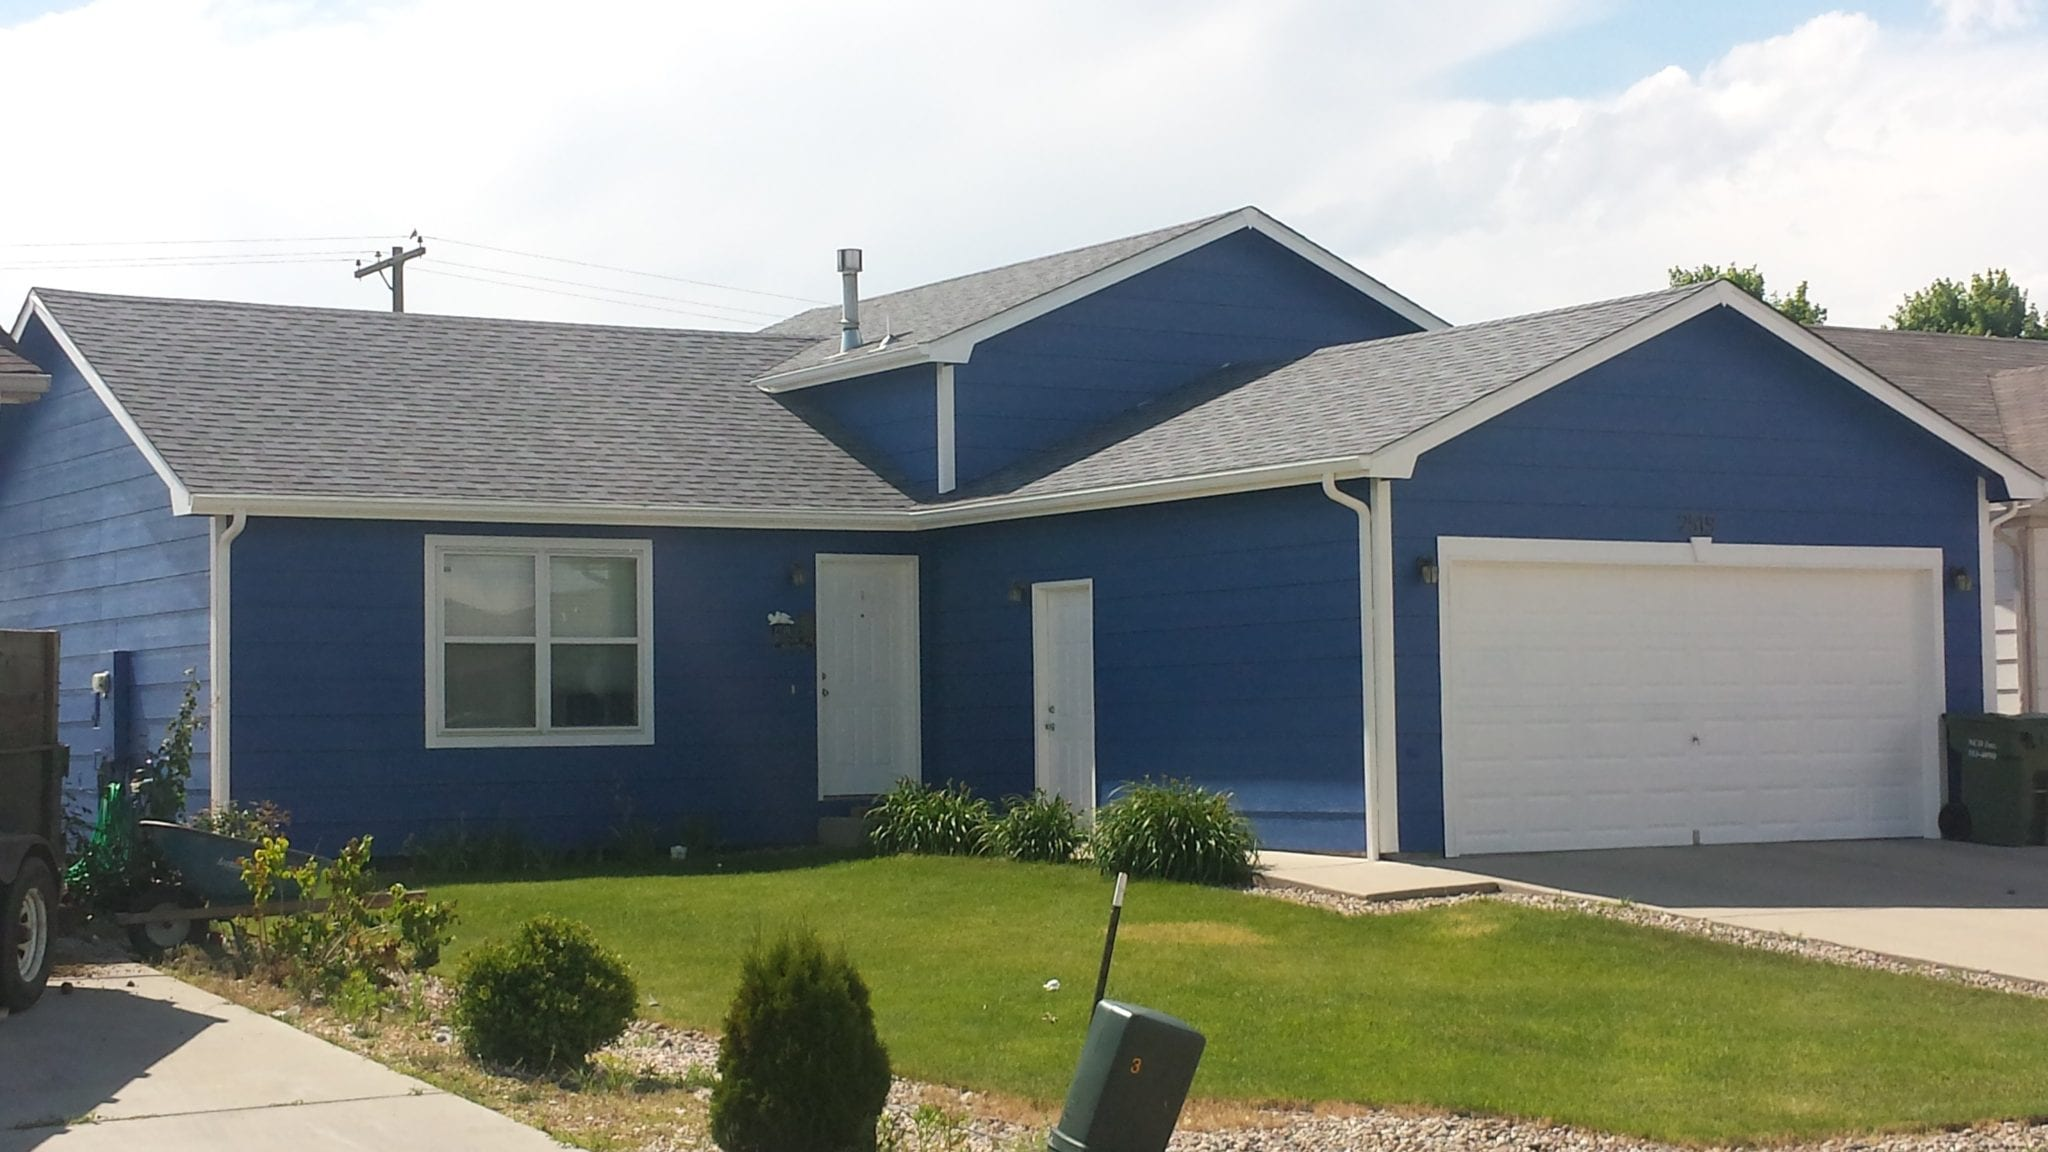 Siding replacement Fort Collins CO - Severe Weather Roofing & Restoration